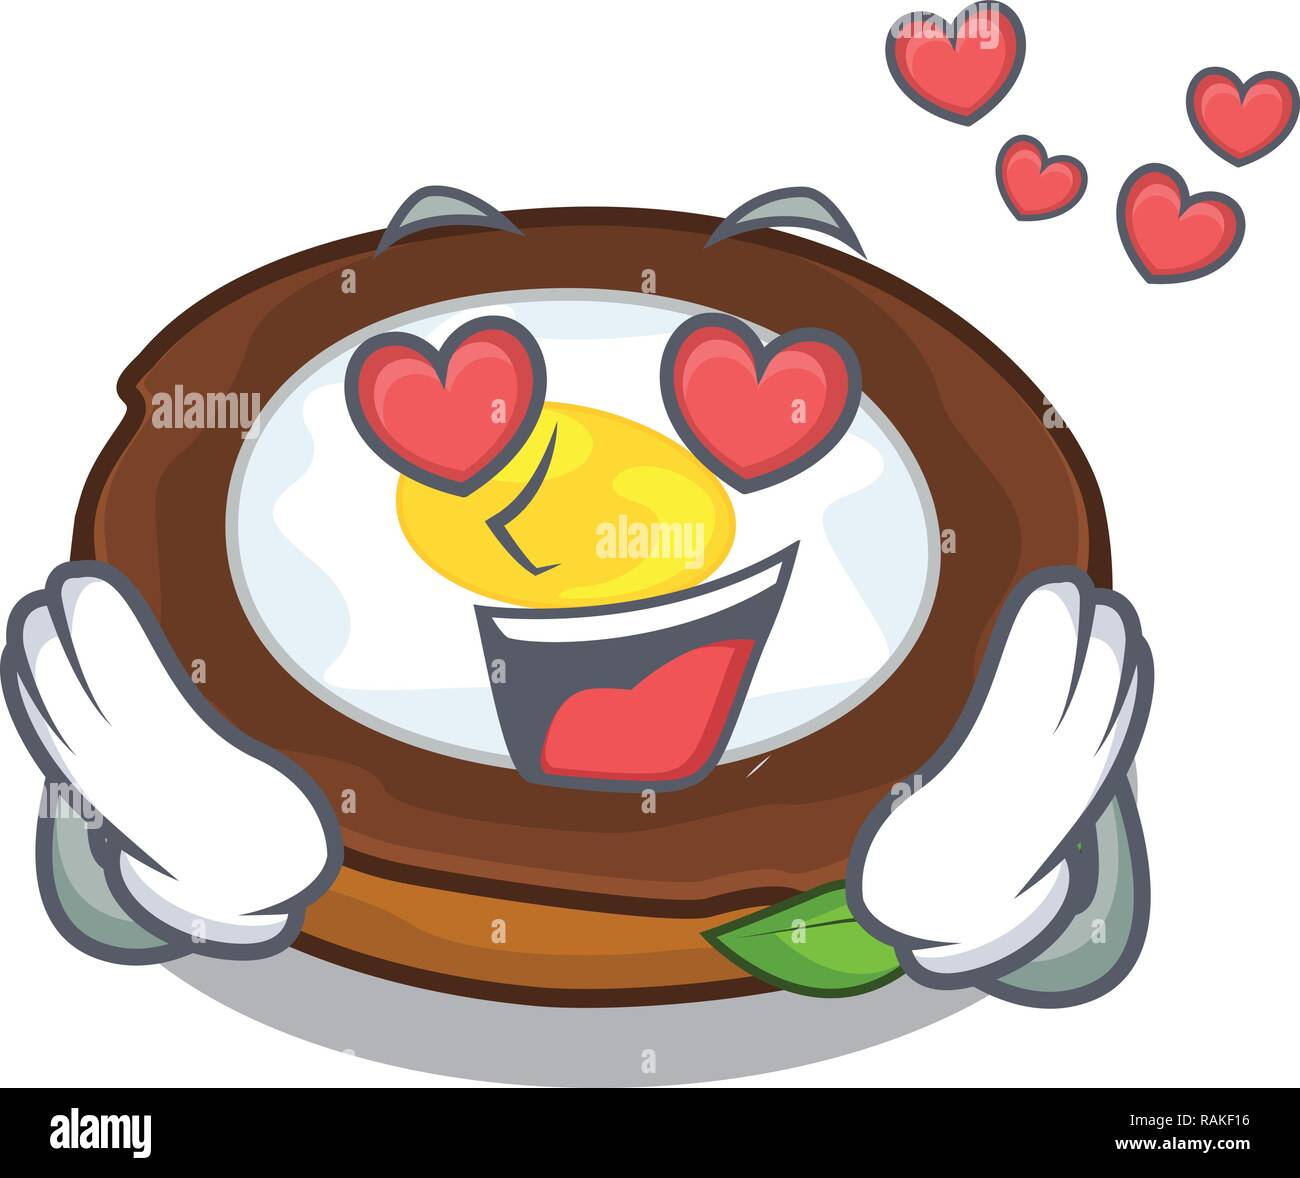 In love egg scotch on character wood boards - Stock Vector